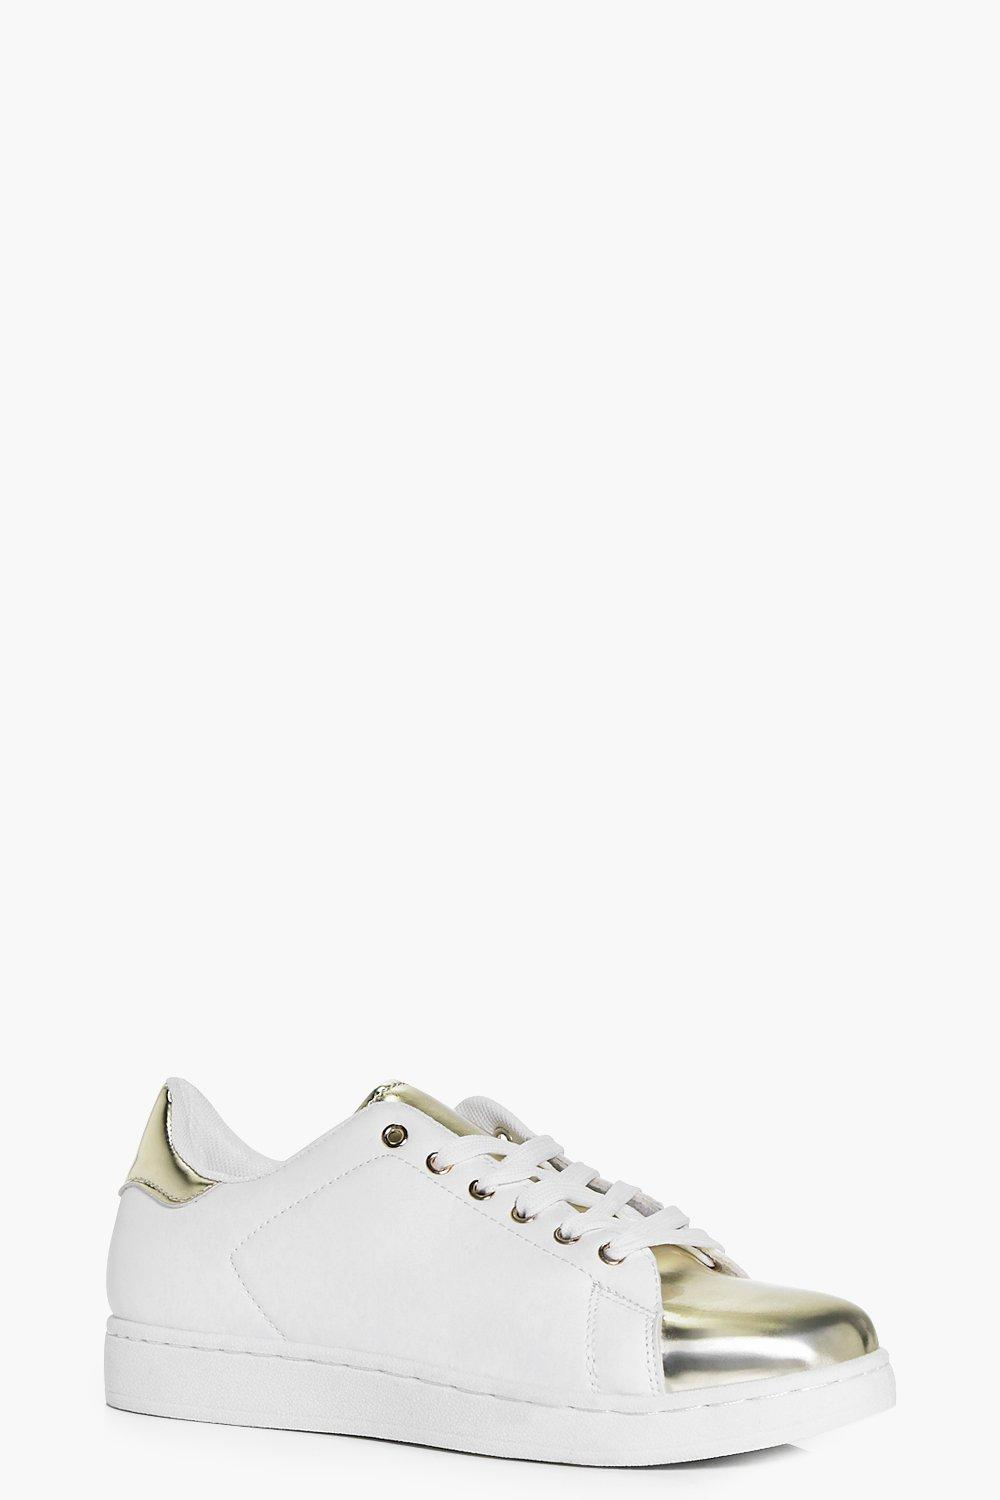 Lucy Metallic Toe Cap Trainer